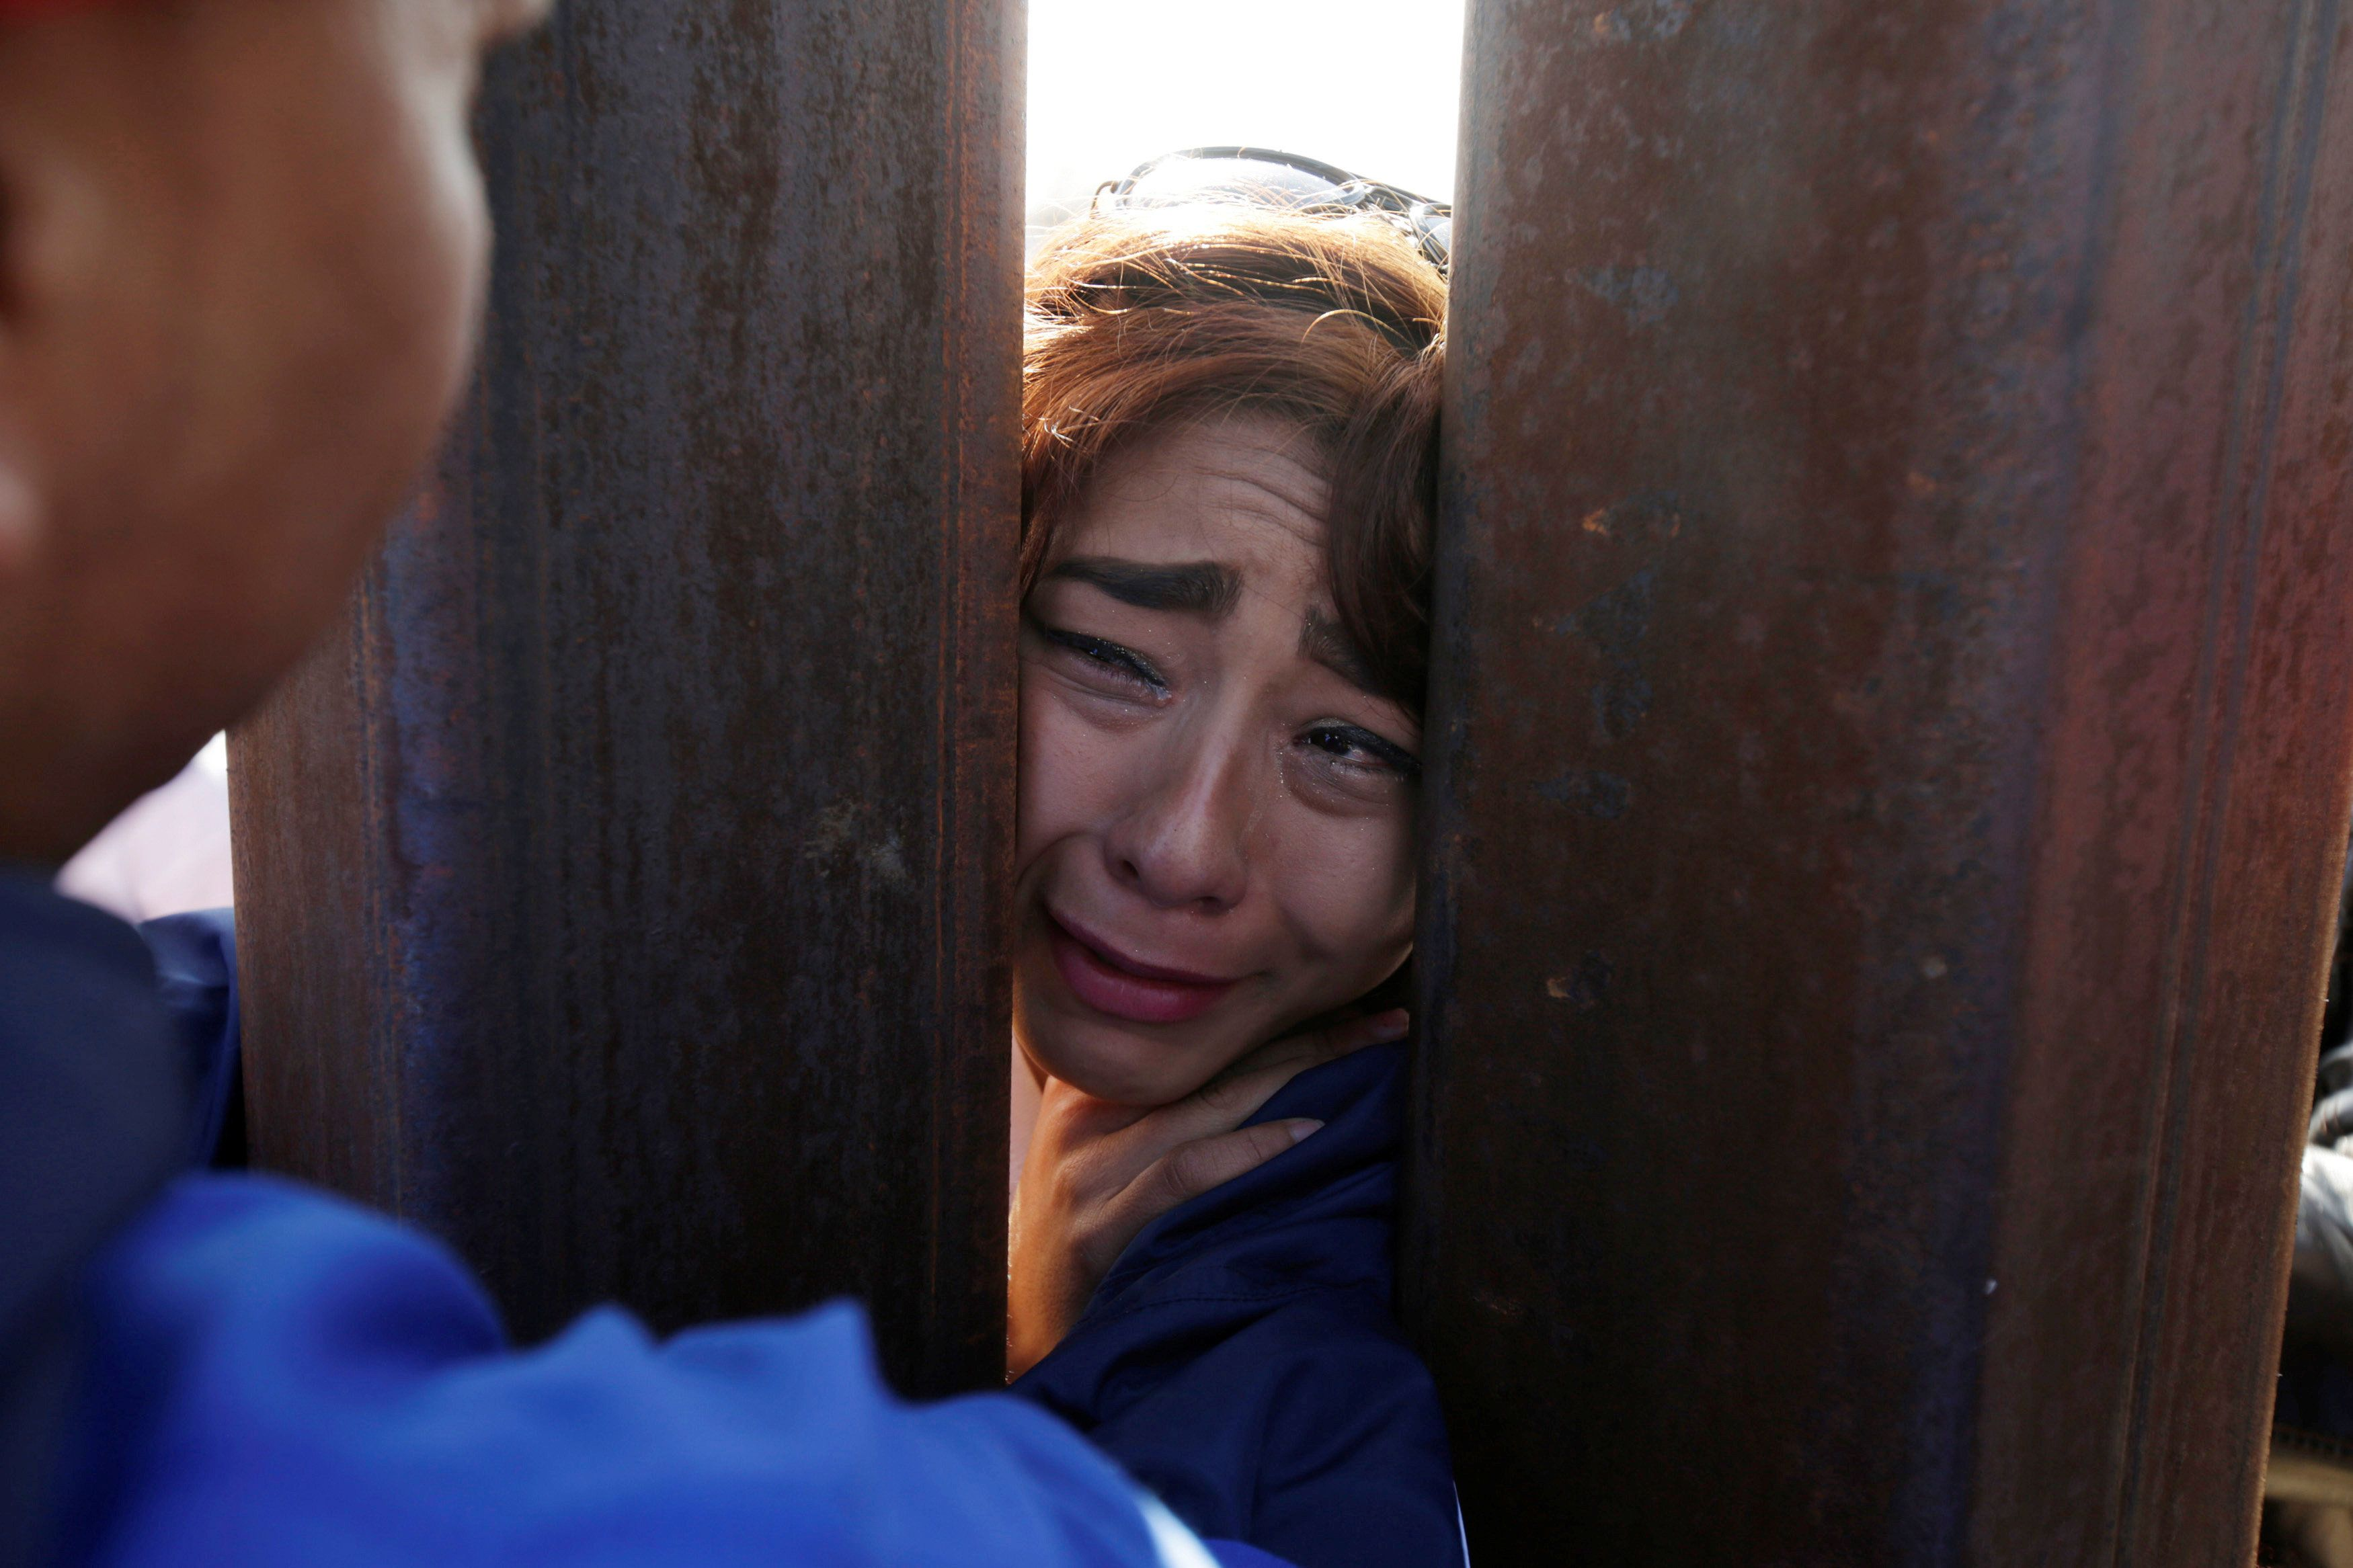 A woman cries as 'Dreamers' meet with relatives during the 'Keep Our Dream Alive' binational meeting at a new section of the border wall on the U.S.-Mexico border in Sunland Park, U.S., opposite the Mexican city of Ciudad Juarez, Mexico, December 10, 2017. Picture taken from the U.S side of the U.S.-Mexico border. REUTERS/Jose Luis Gonzalez